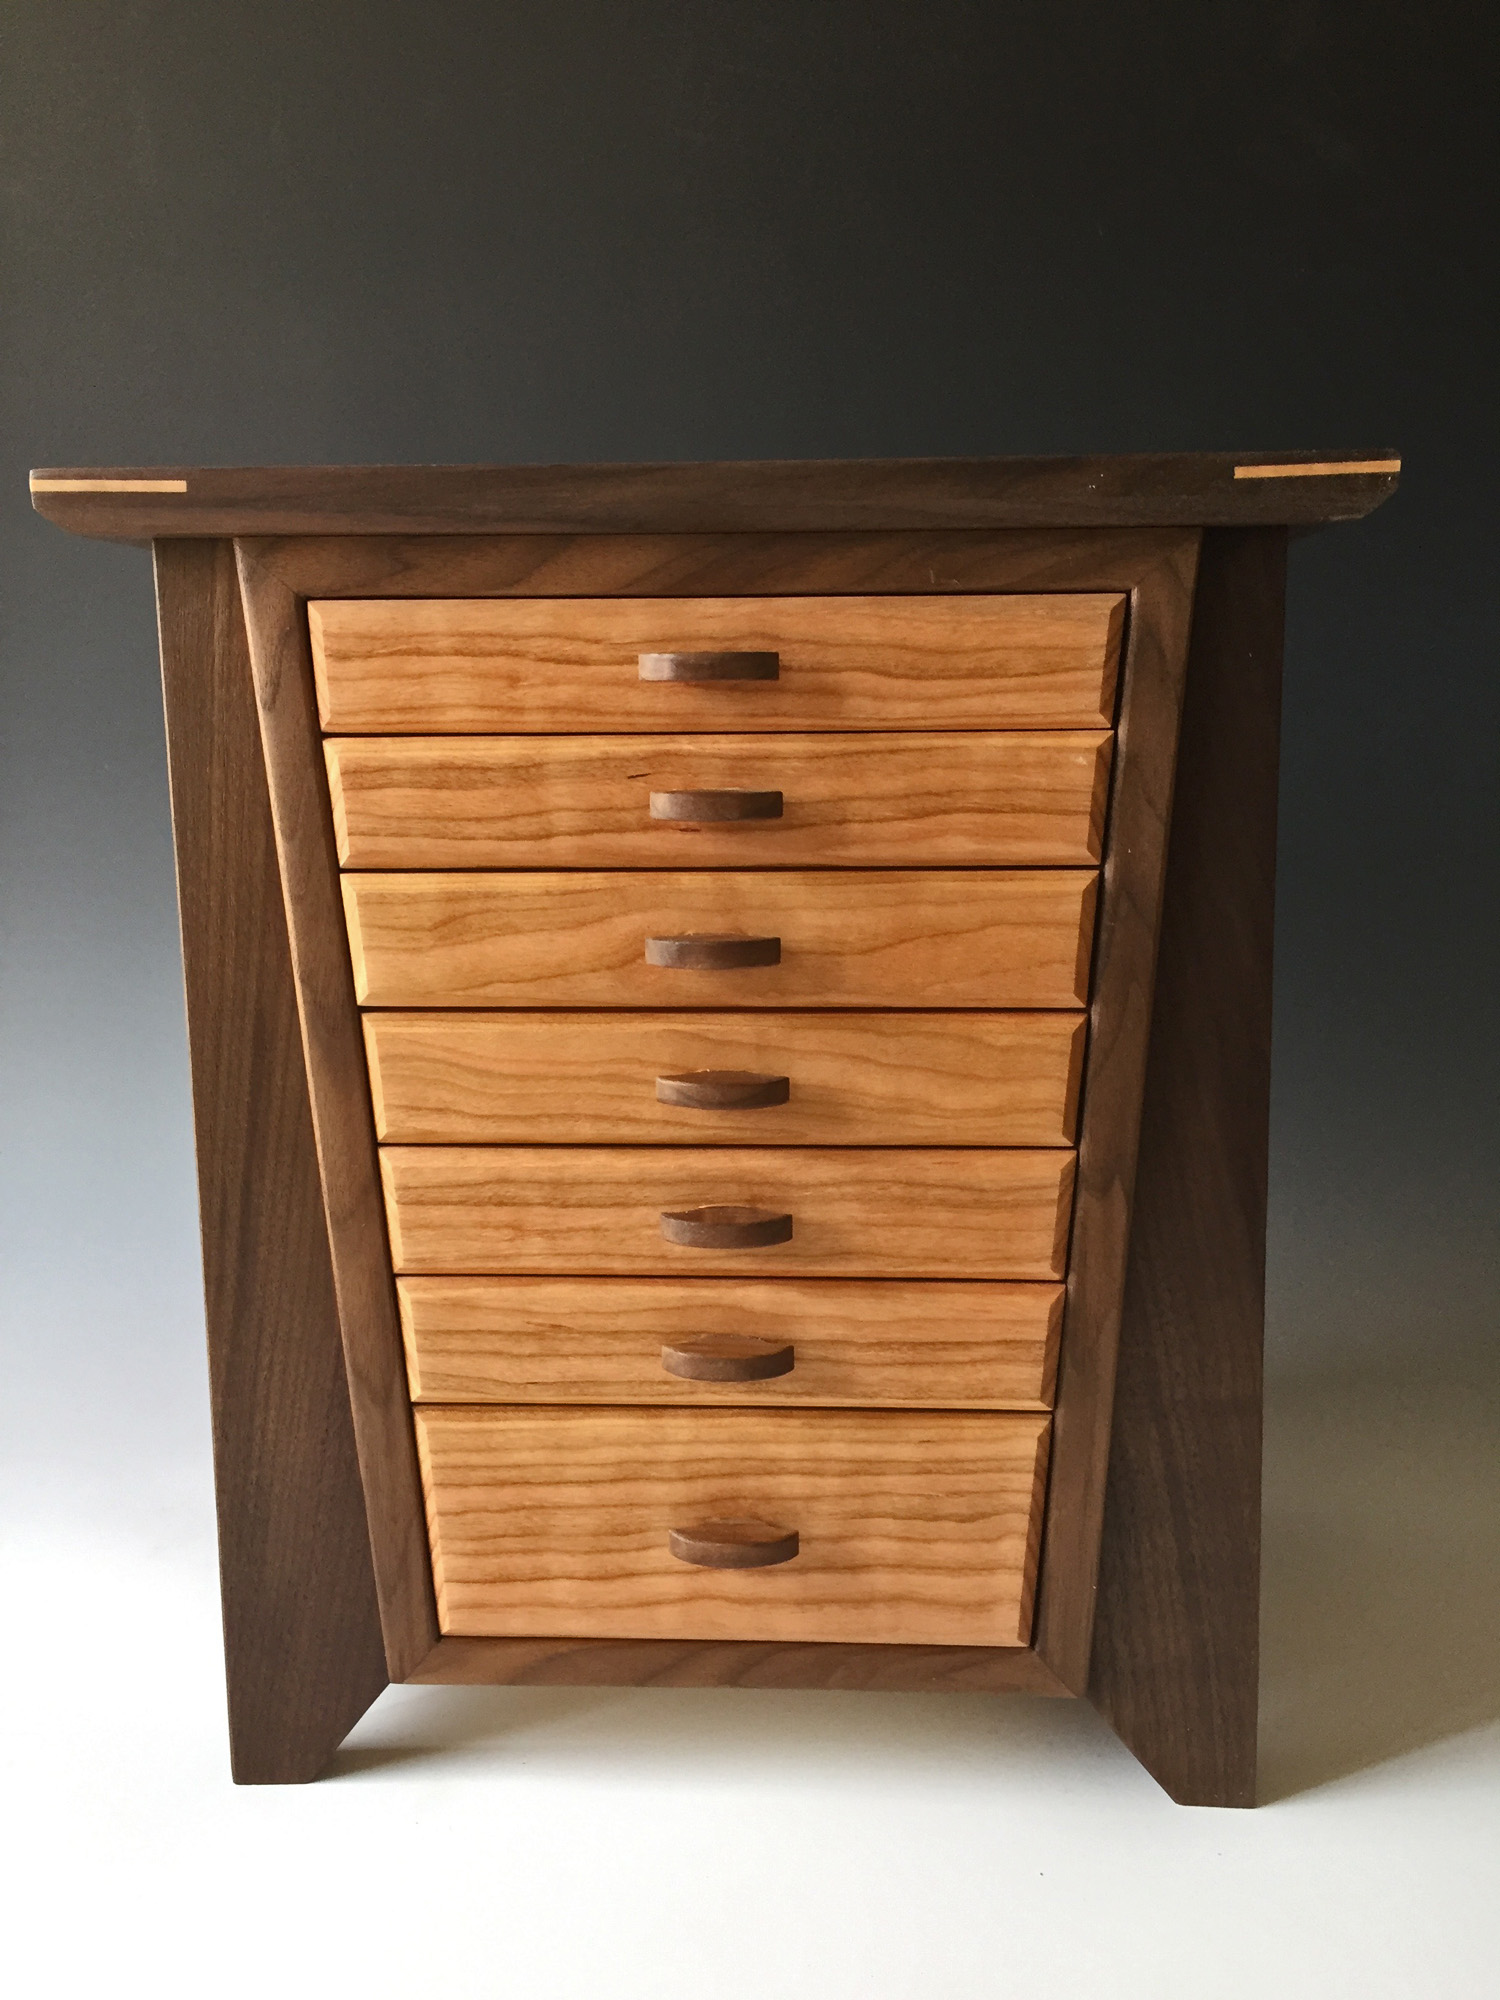 A photo of one of the most popular of my quality jewelry boxes, The Angle, shown in black walnut wood with curly natural cherry accents.